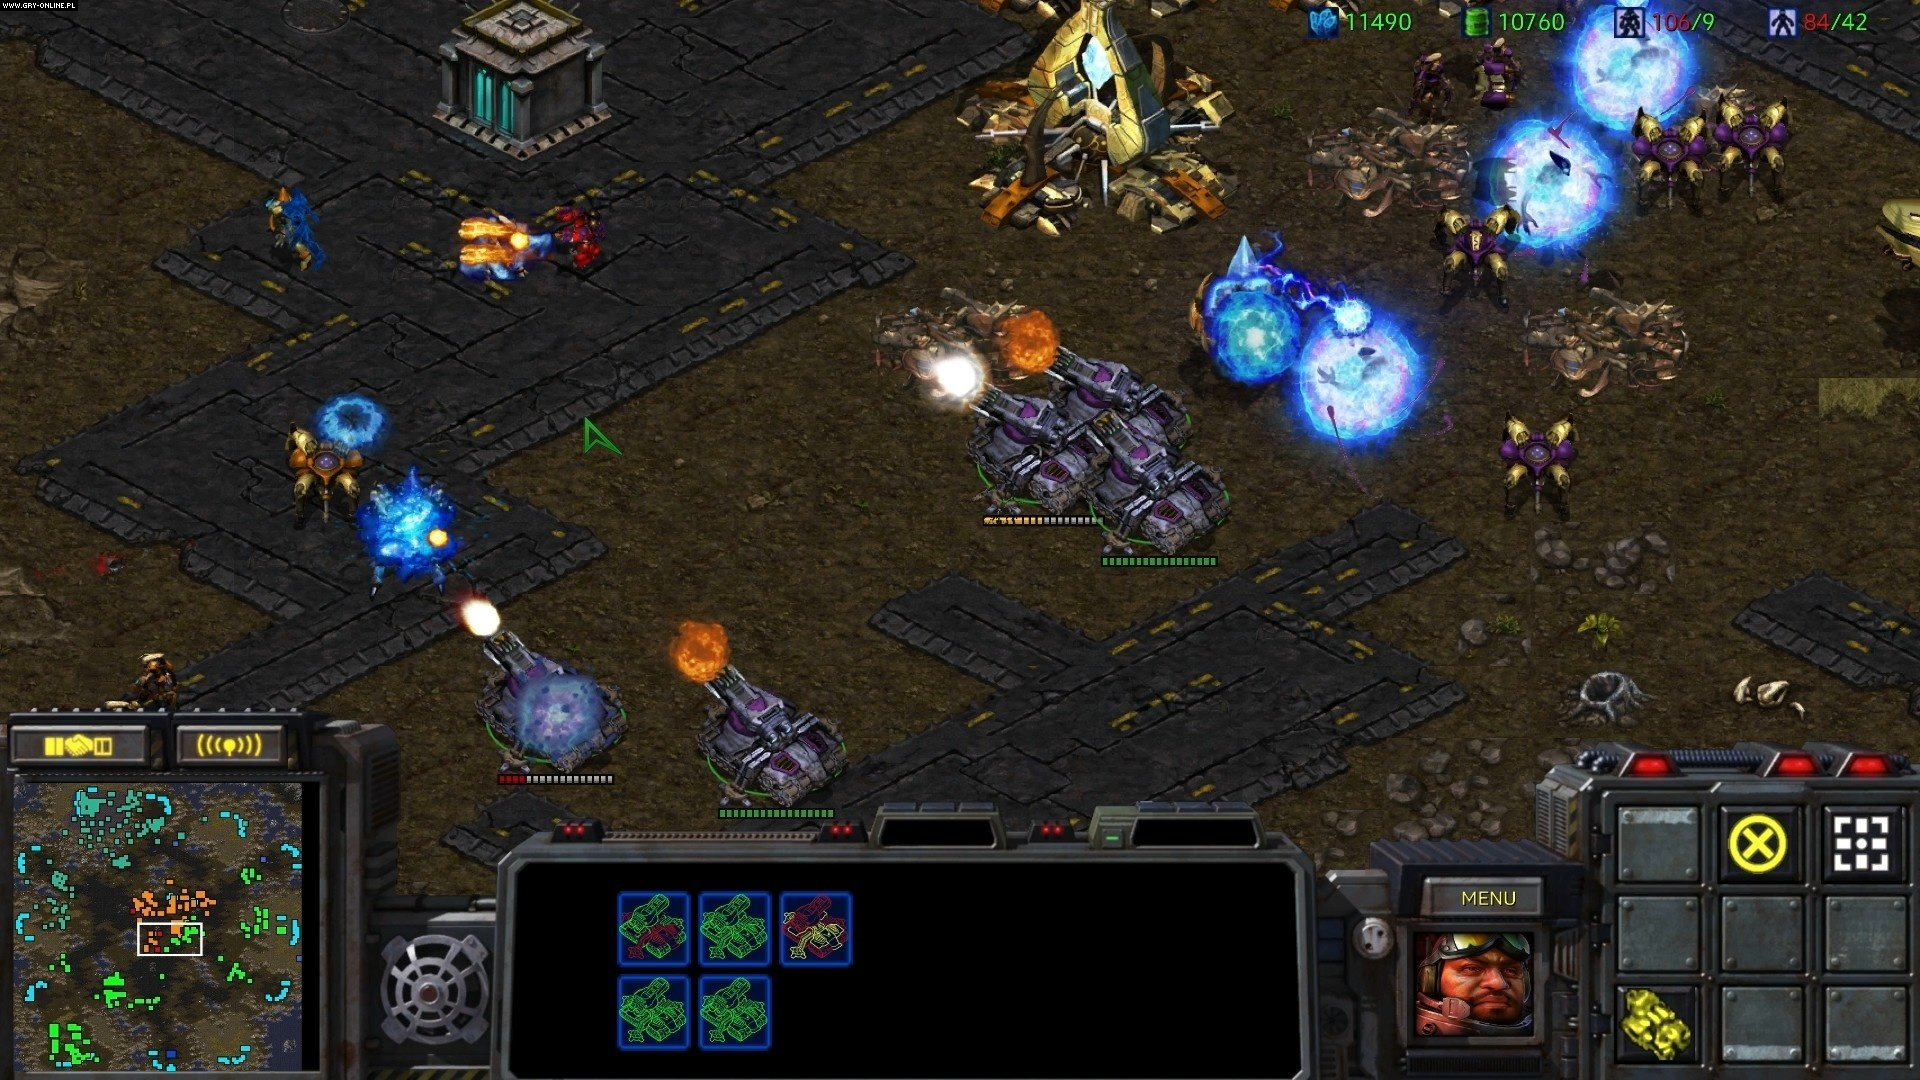 StarCraft: Remastered PC Gry Screen 5/15, Blizzard Entertainment